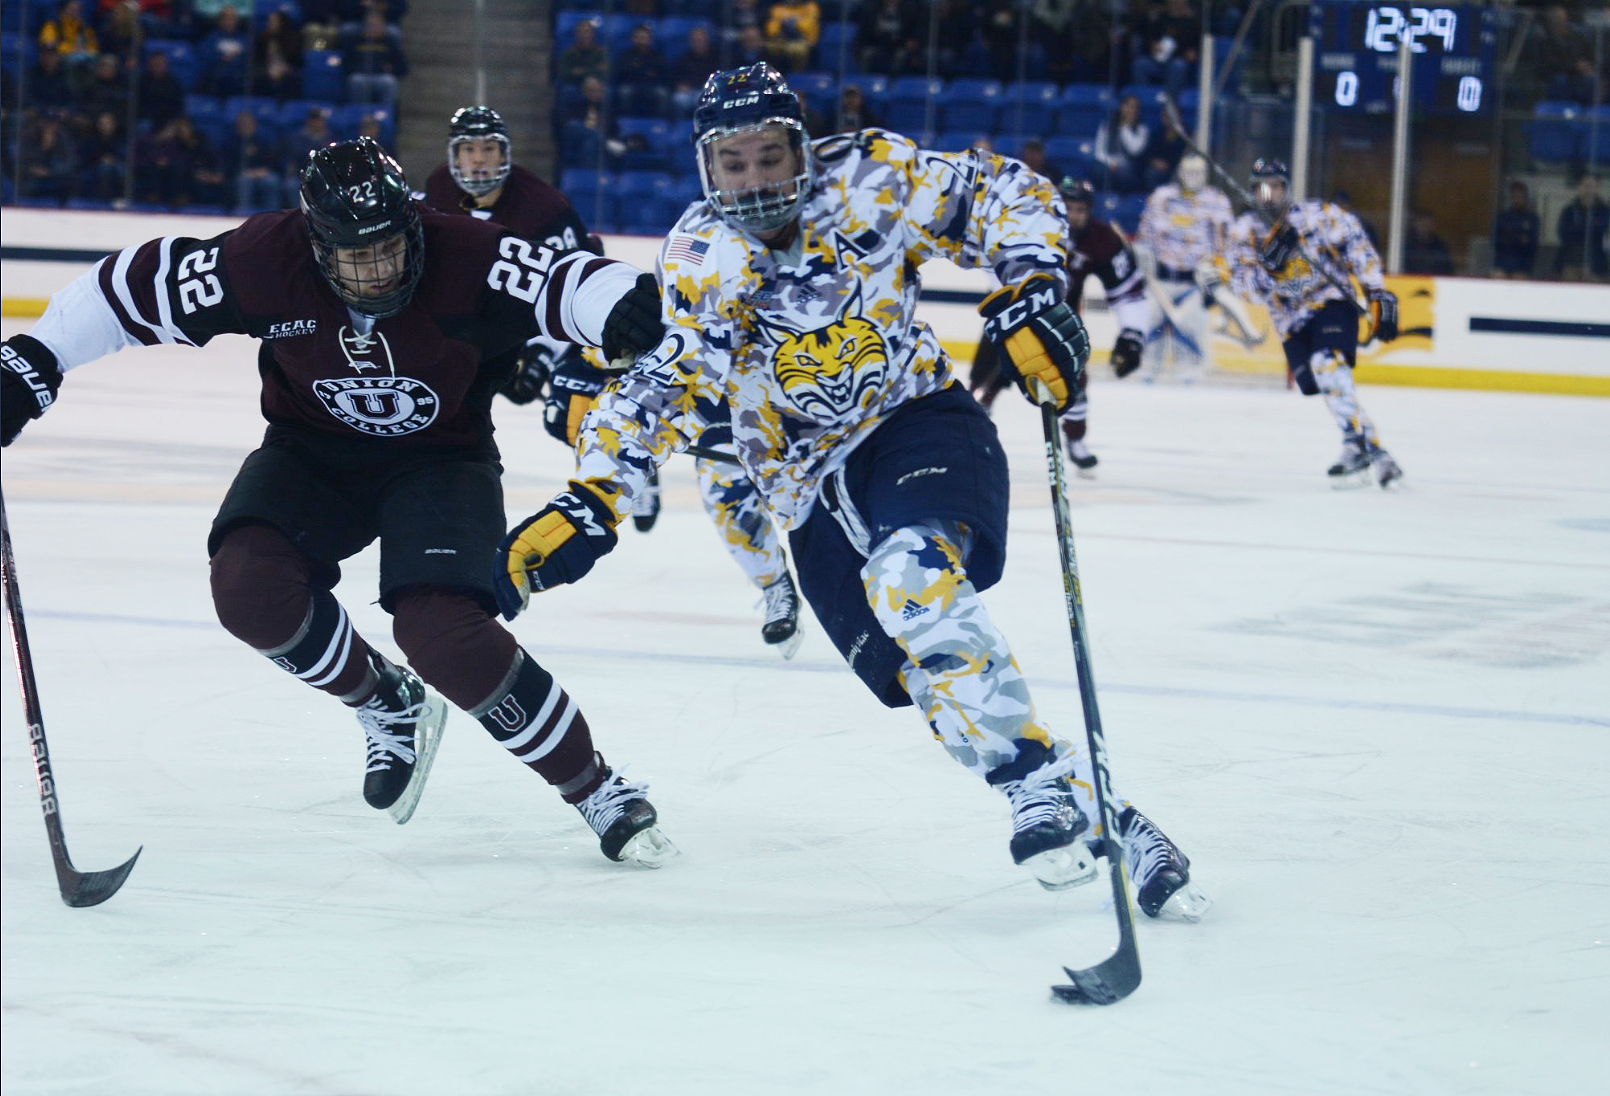 Quinnipiac men's ice hockey loses to Union at home, 5-2